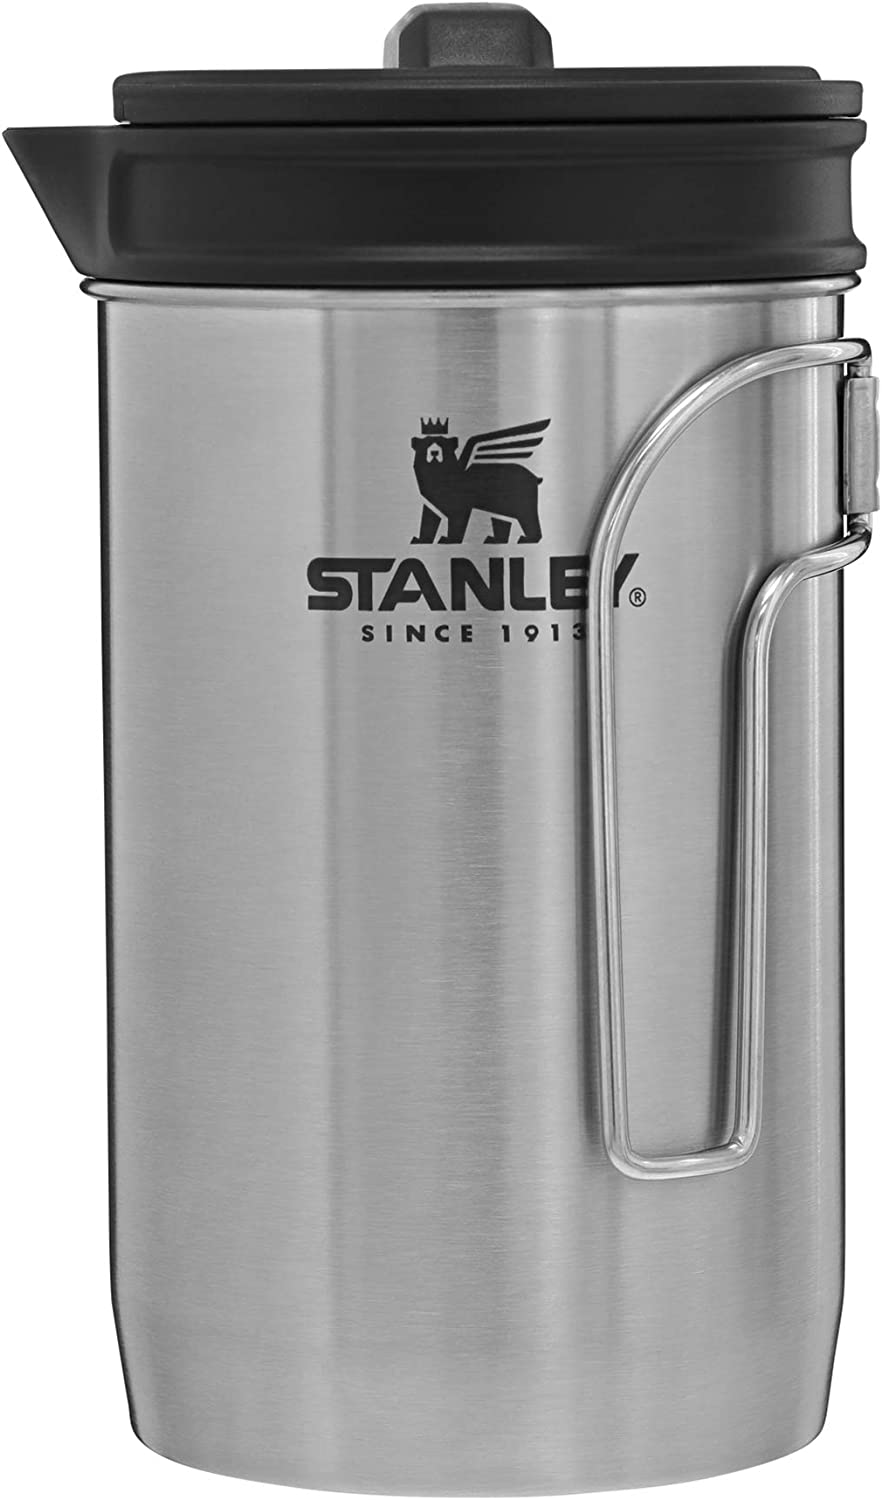 Stanley Adventure All-in-One, Boil + Brewer French Press Coffee Maker - 32oz BPA Free Campfire Coffee Pot Heats up Tea or Soup - Great for Camping and Travel – Dishwasher Safe,